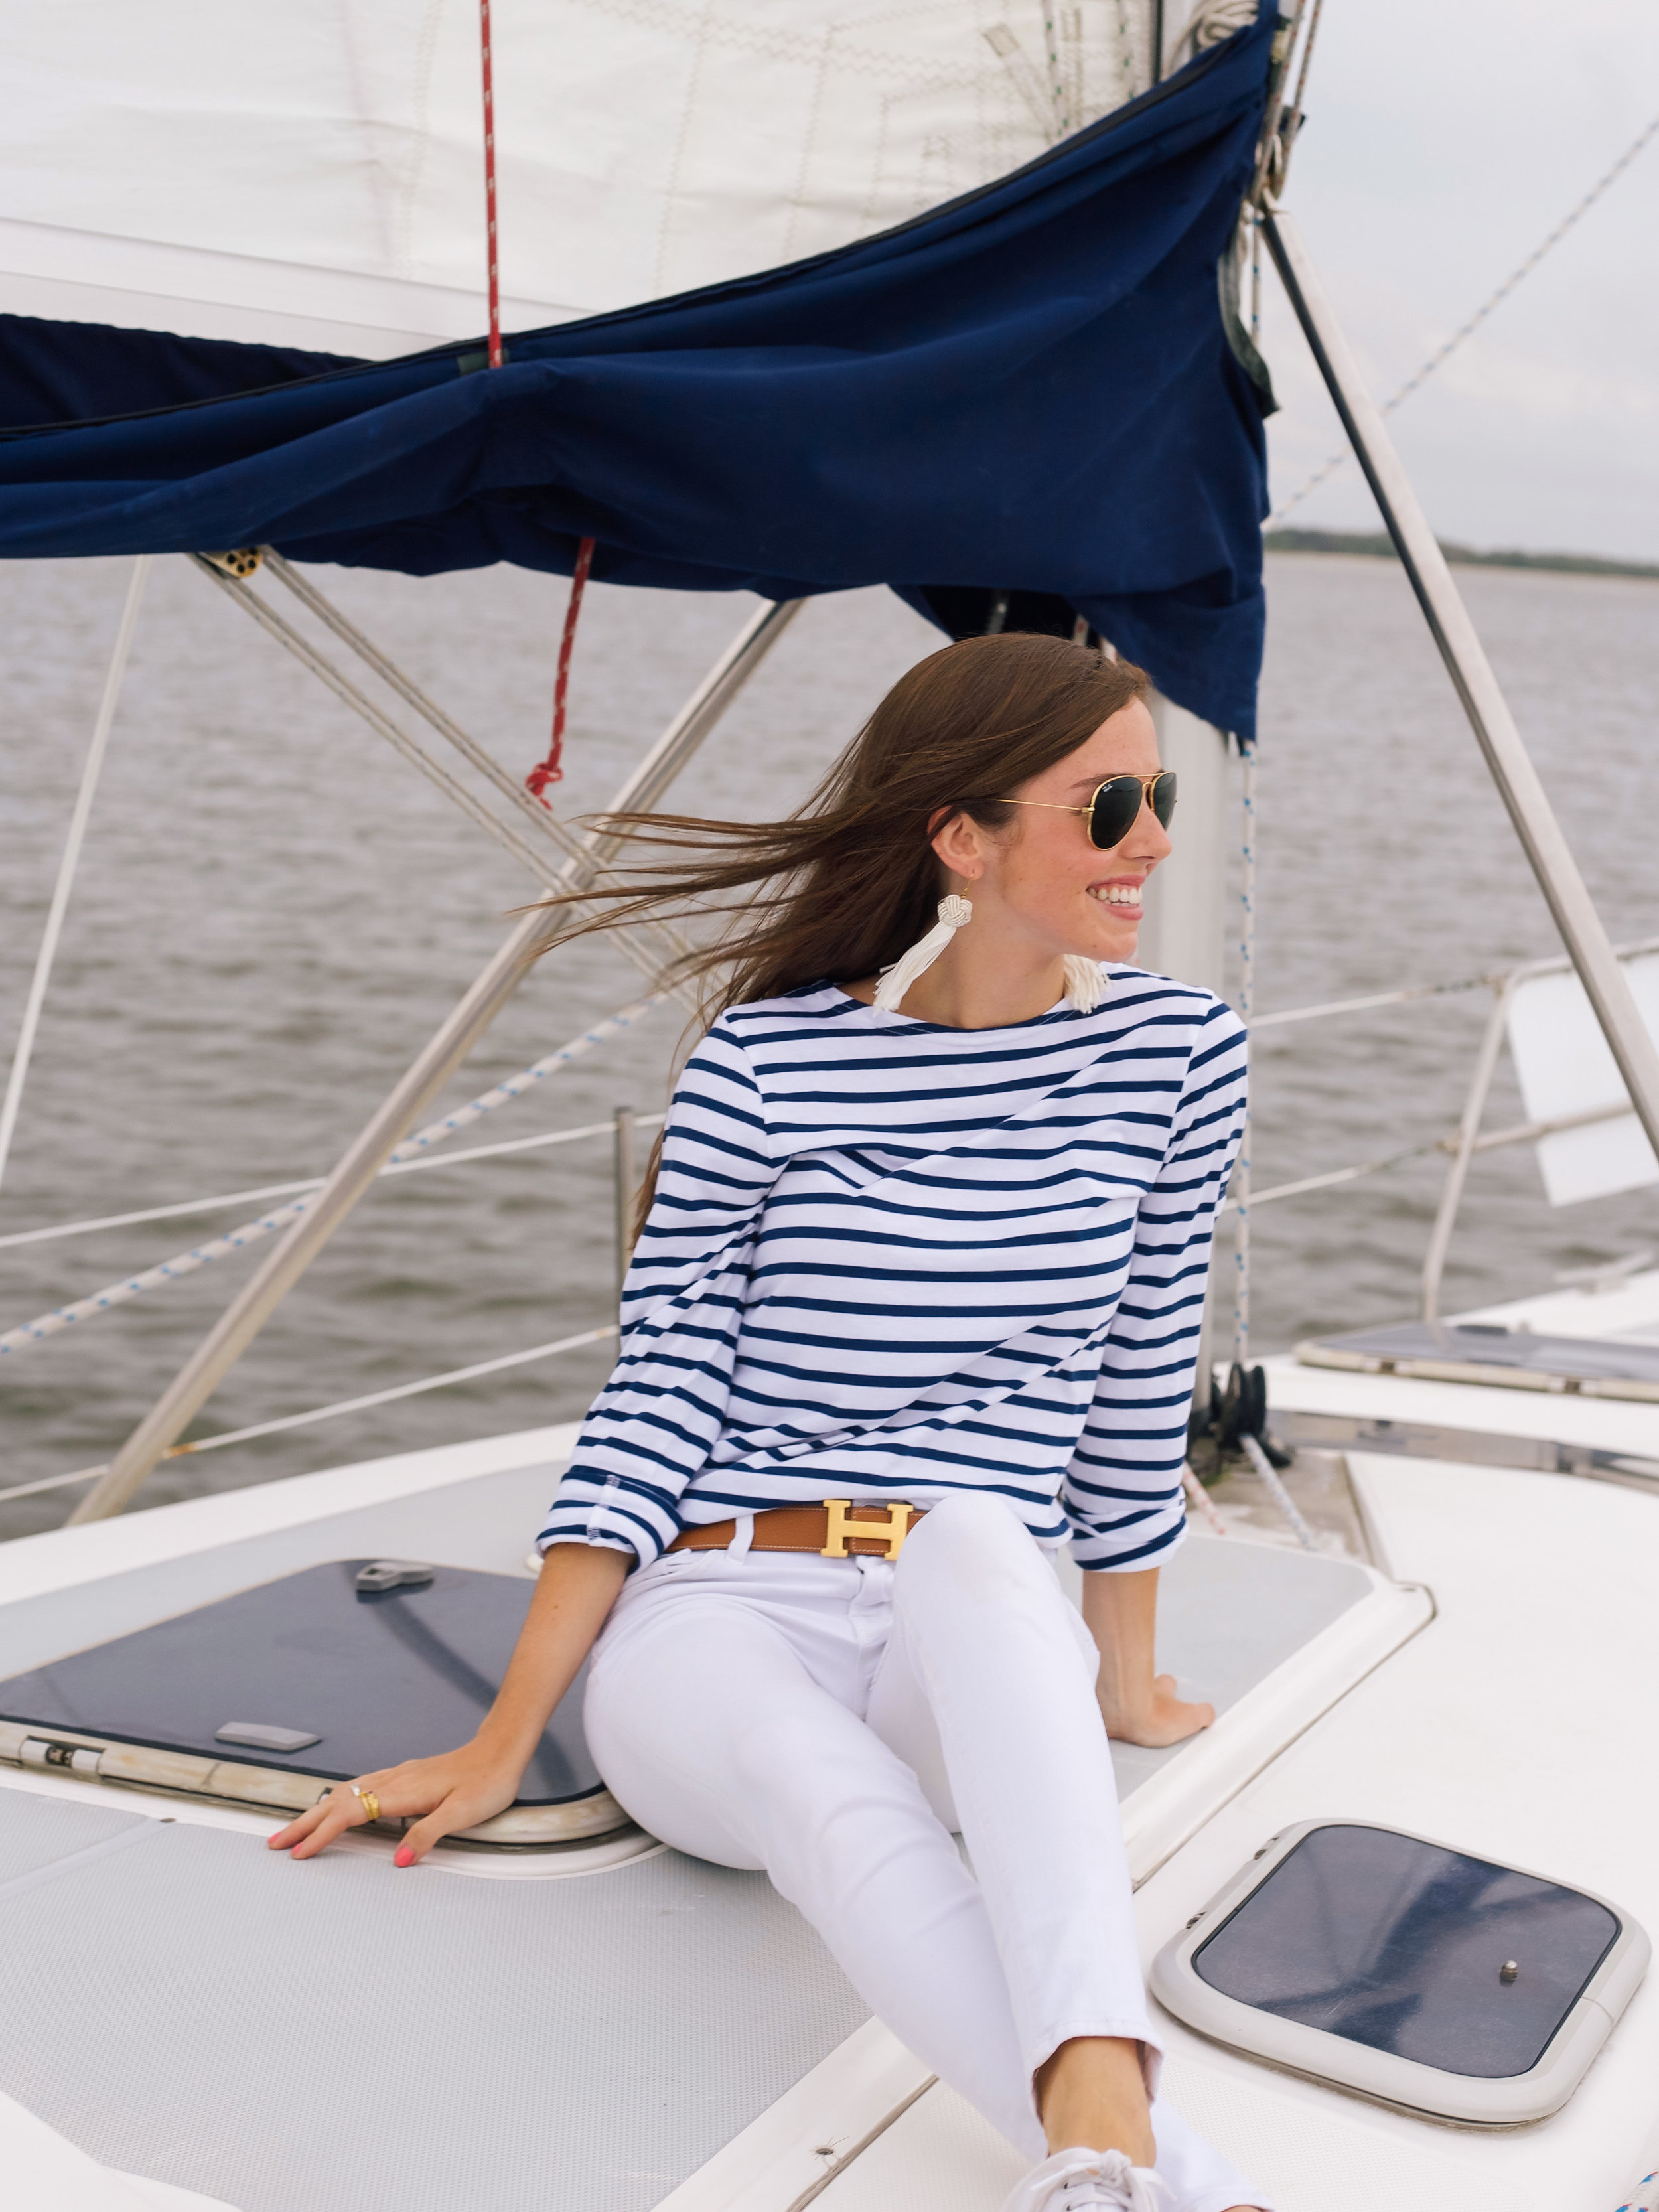 LCB STYLE FASHION BLOGGER AMELIA ISLAND SAILING (3 of 12).jpg